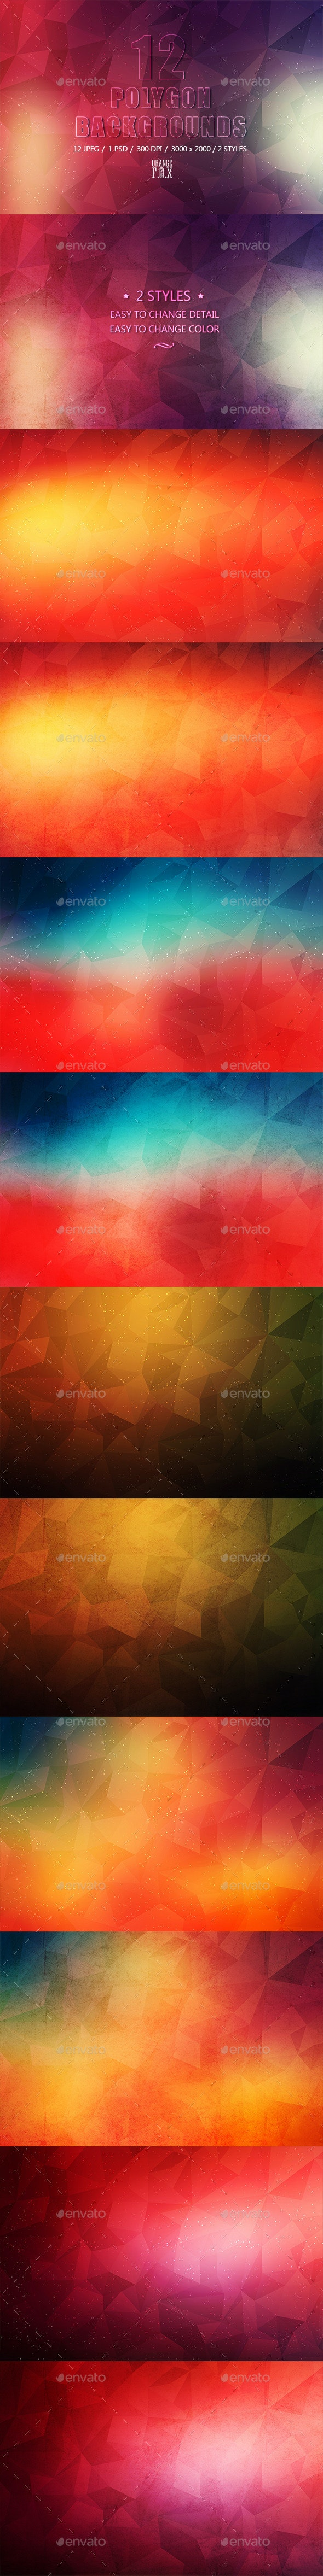 12 Polygon Backgrounds - 2 Styles - Abstract Backgrounds